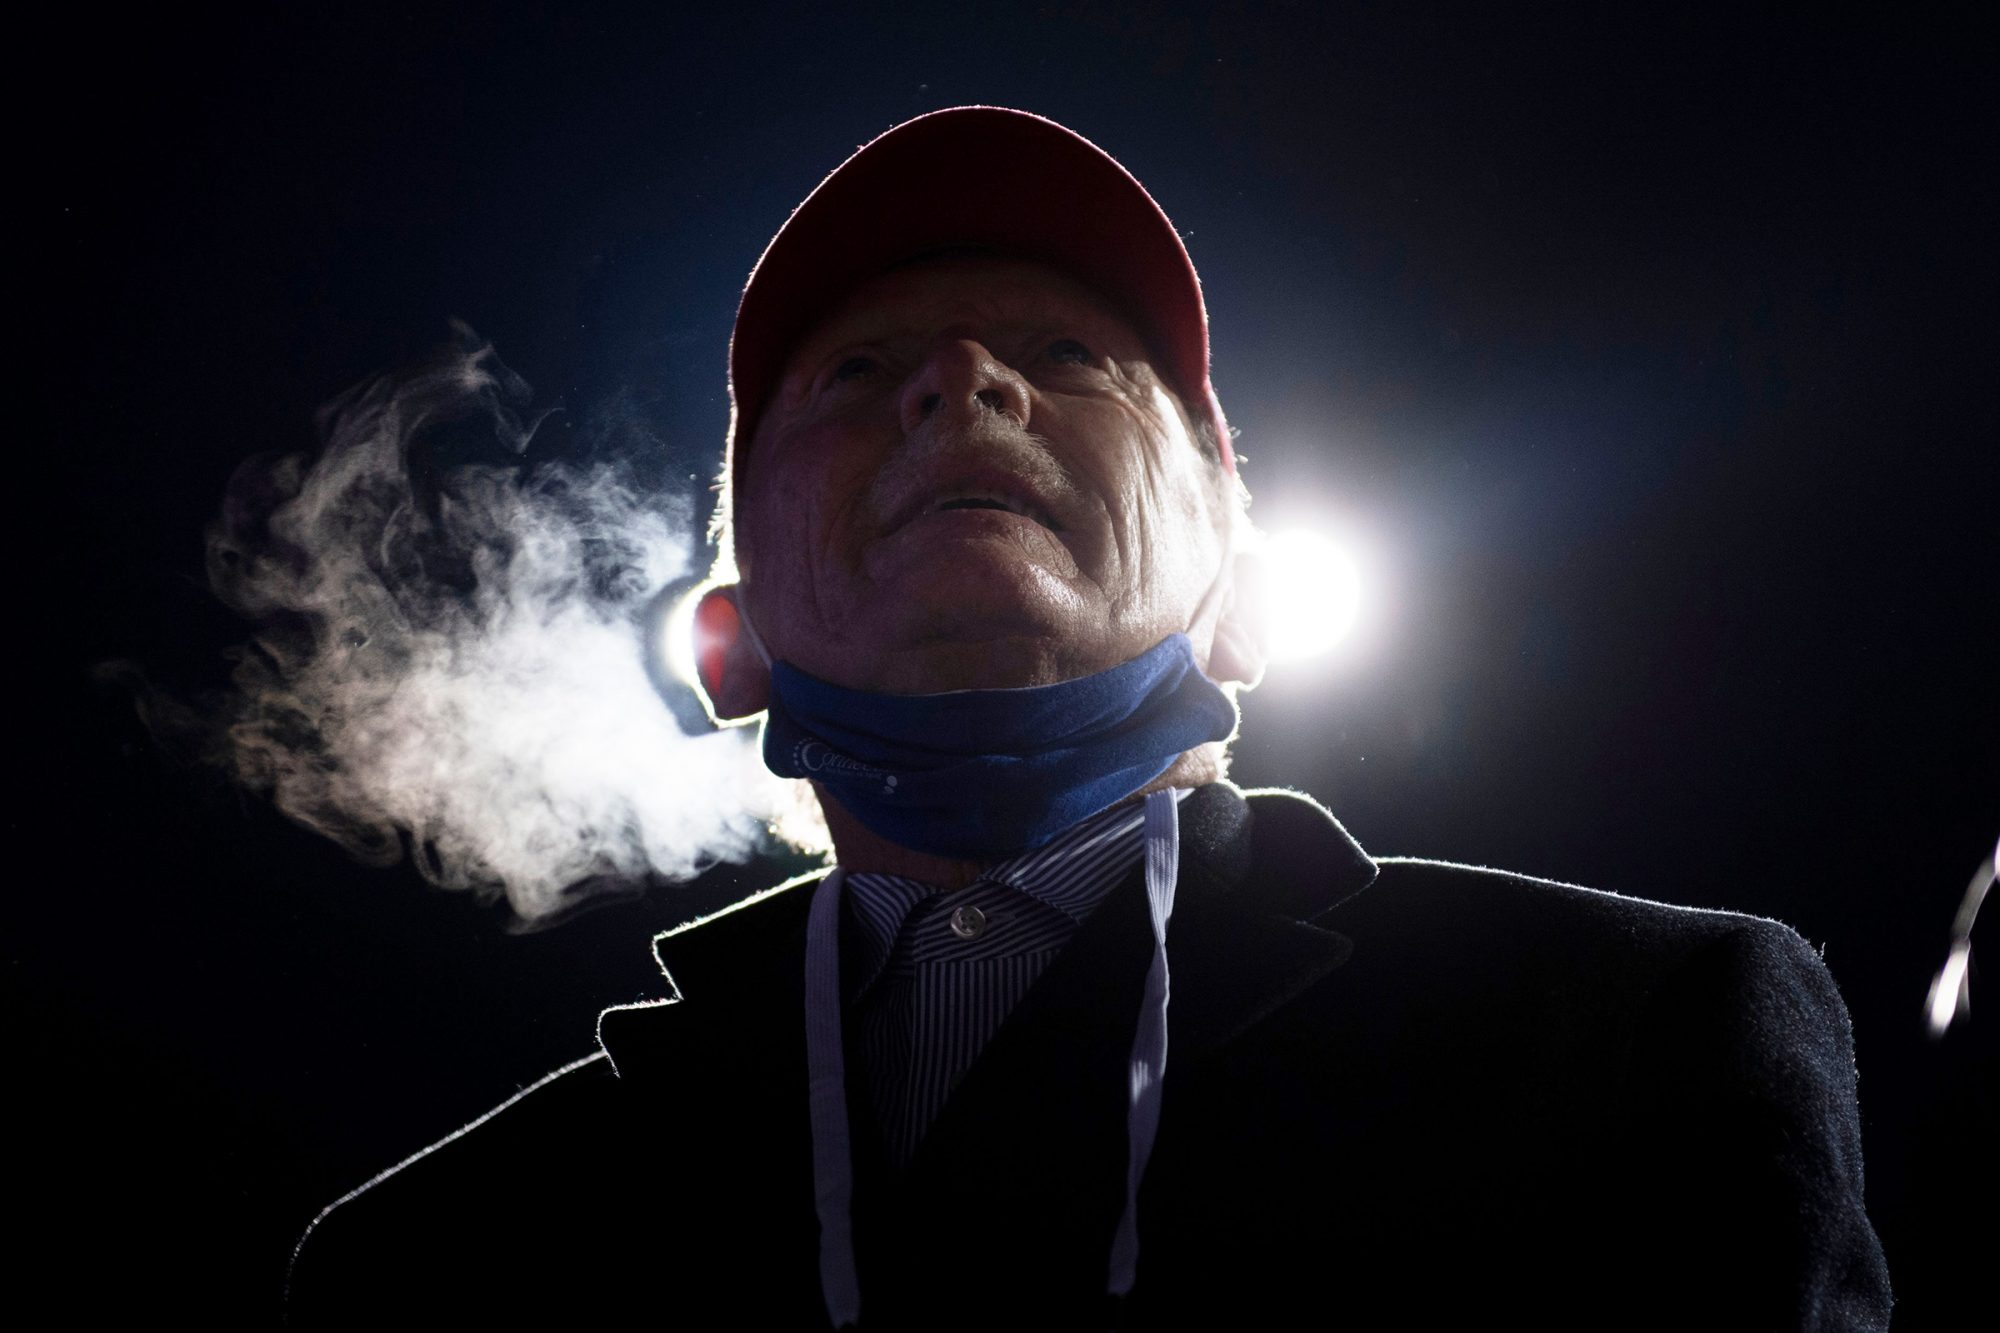 People watch as President Donald Trump speaks during a Make America Great Again rally at Eppley Airfield on October 27, 2020